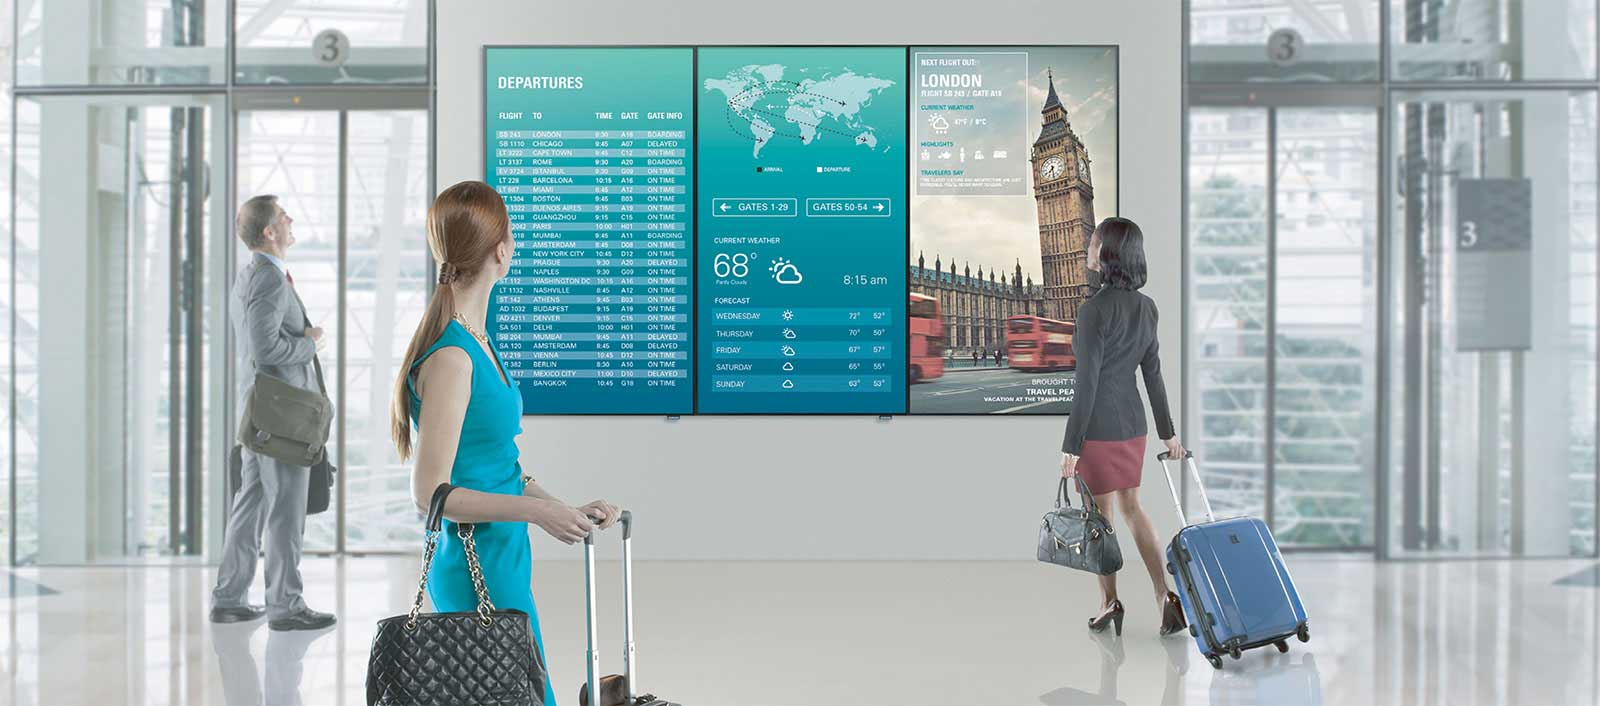 digital-signage_airport_slide01